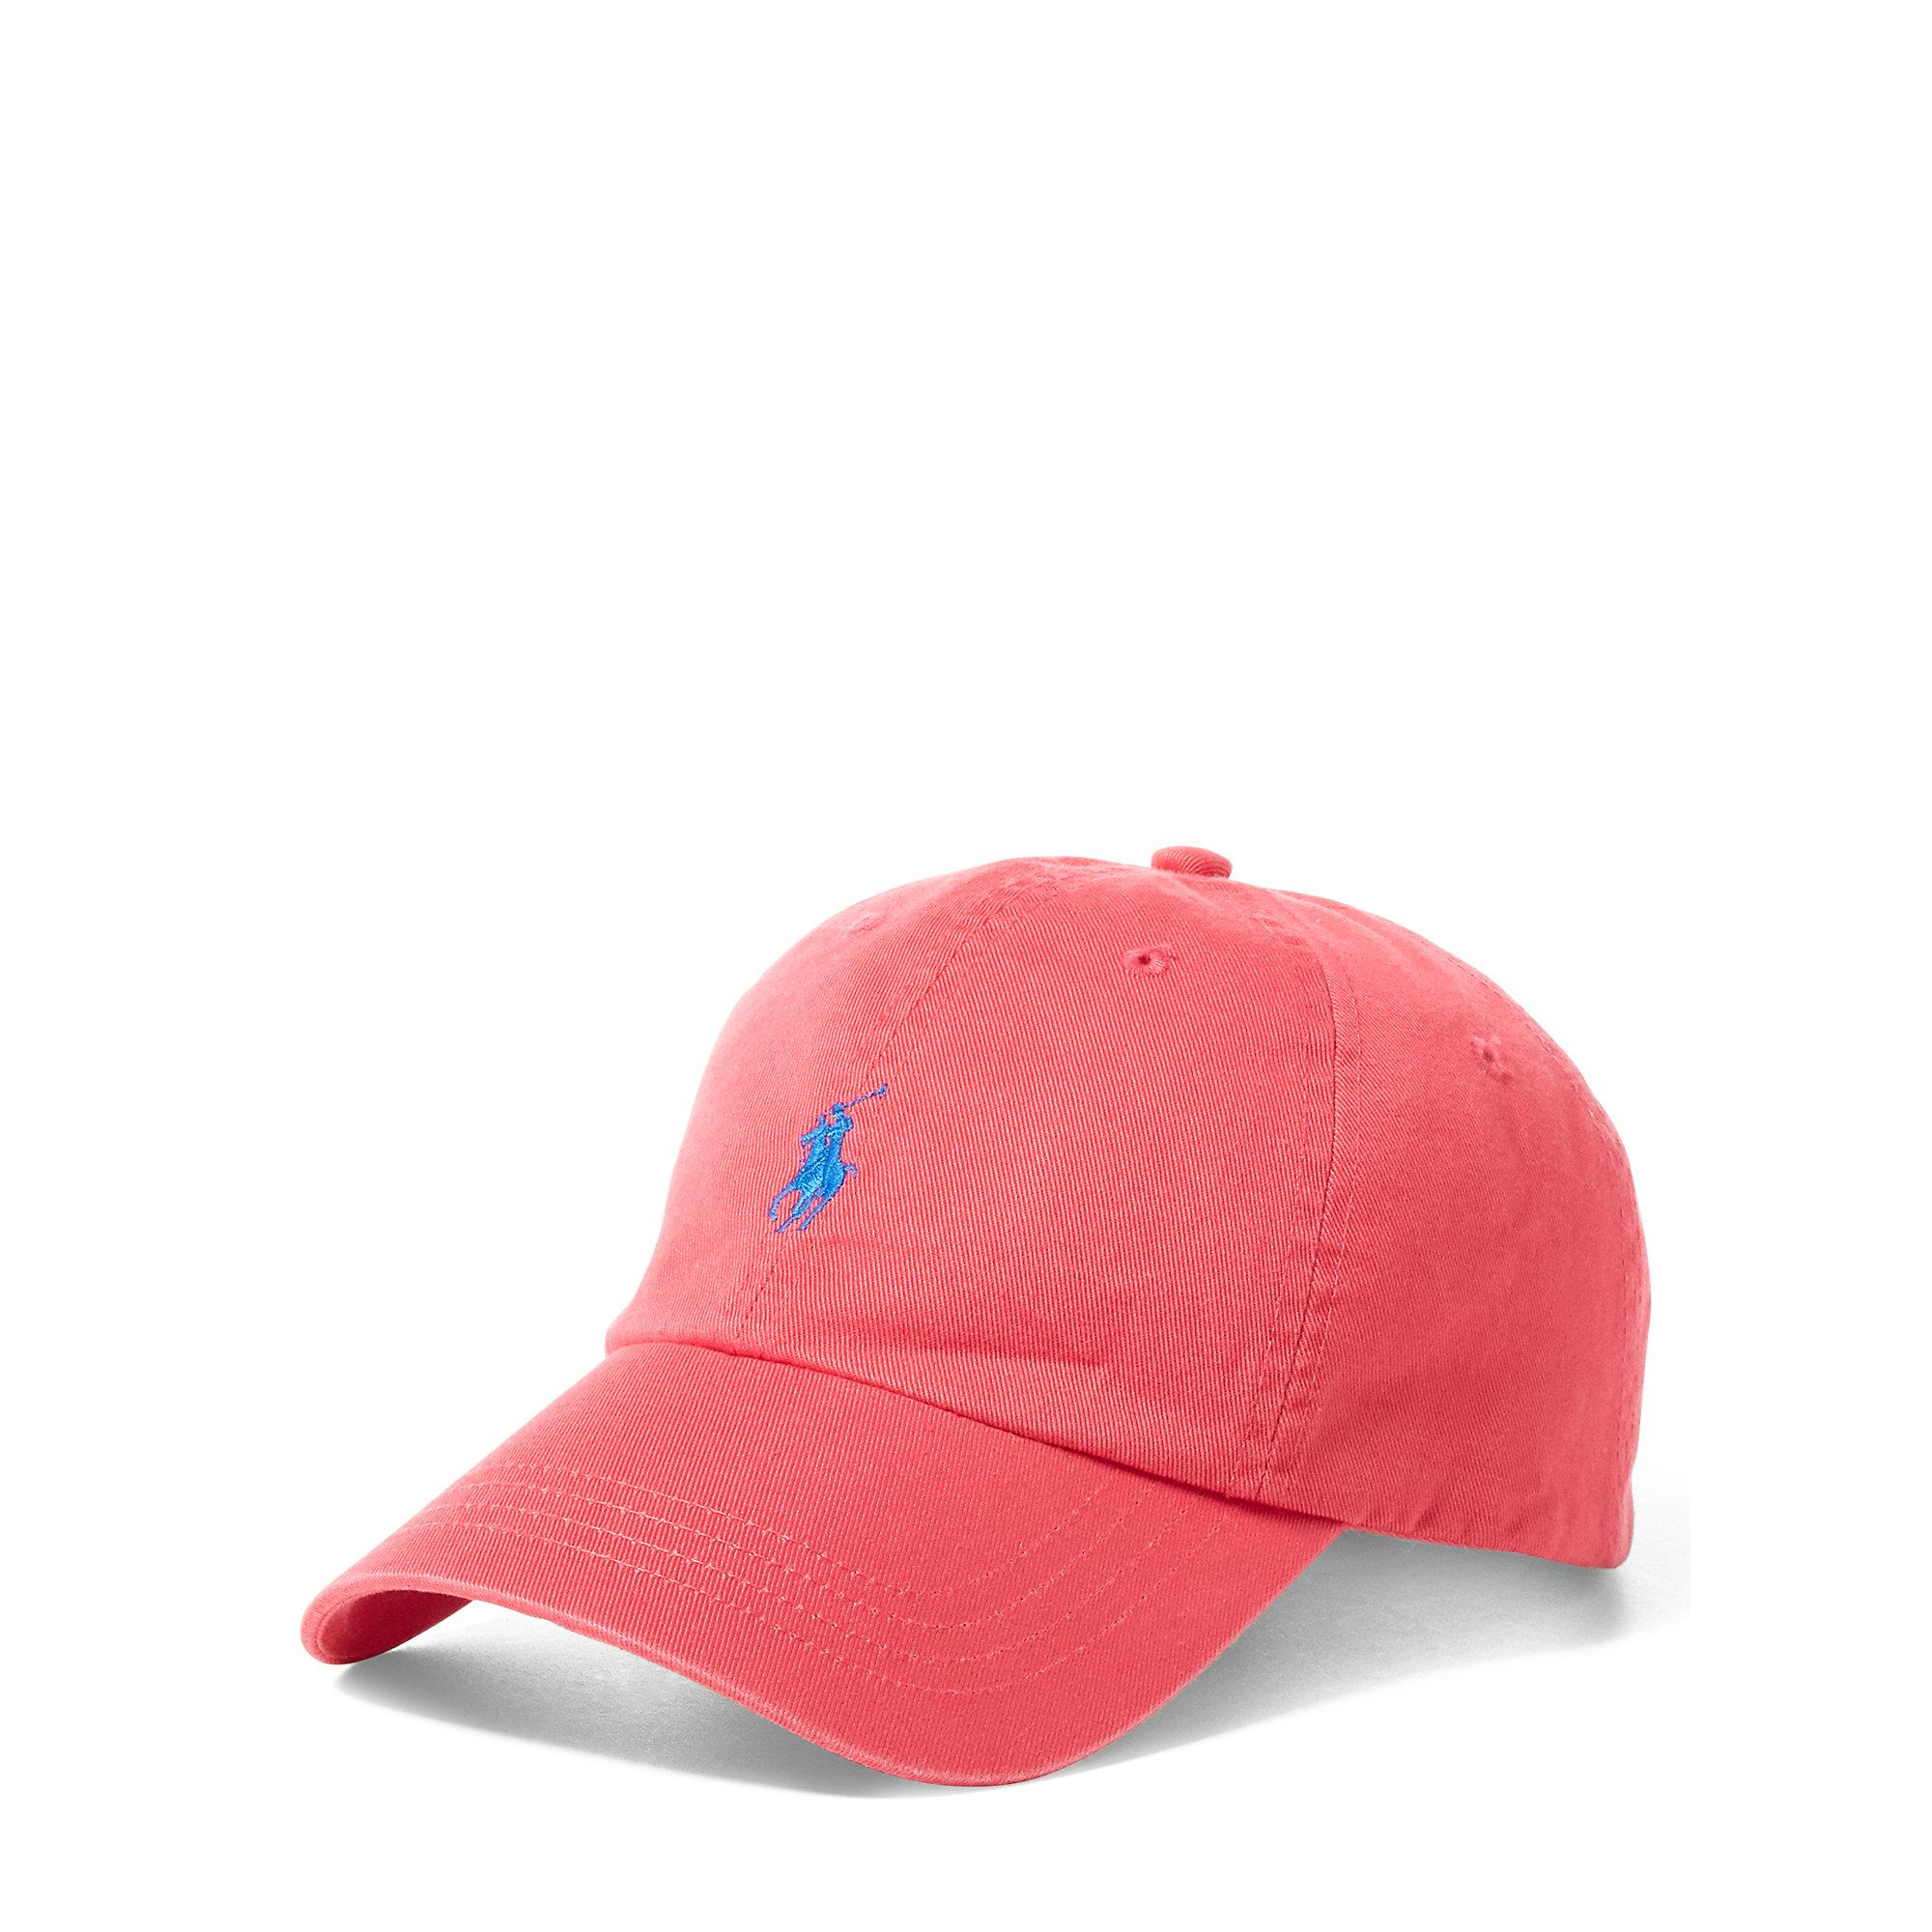 545aff2a42552 Lyst - Polo Ralph Lauren Cotton Chino Sports Cap in Pink for Men